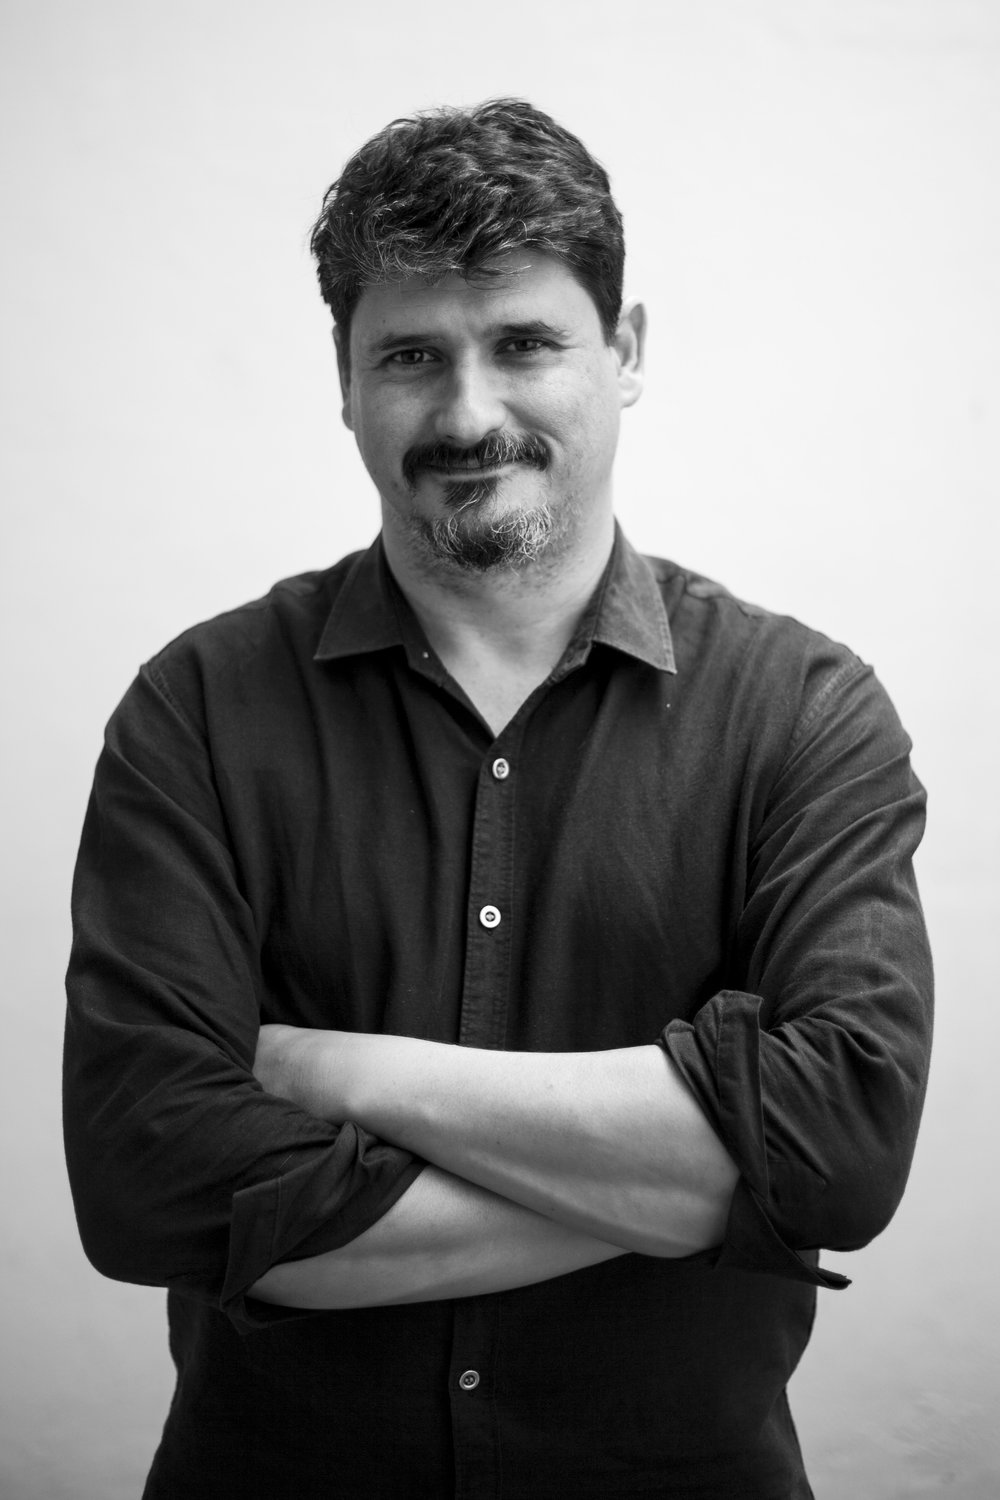 José Luis Sanz - is the director of El Faro, a digital news site in El Salvador. A founding member of Sala Negra, an investigative team specializing in organized crime, violence, and public safety in Central America, since 2009 he has reported and written about the Mara Salvatrucha and Barrio 18 gangs. He is co-author of the books Johnattan has No Tattoos (CCAPVJ, 2009) and Dark Stories: From a Region that Doesn't Count (Aguilar, 2013). He directed the documentaries The Last Offensive (El Salvador-Spain, 2009) about the arrival of the FMLN party to power in El Salvador, and The Seed and the Stone (El Salvador-Guatemala, 2010) about the Ixil genocide. He was part of the team that in 2013 won the IPYS Latin American award for investigative journalism for their work on the truce with gangs in El Salvador, and in 2016 the Gabriel García Márquez prize for excellence. Follow him on Twitter @jlsanz